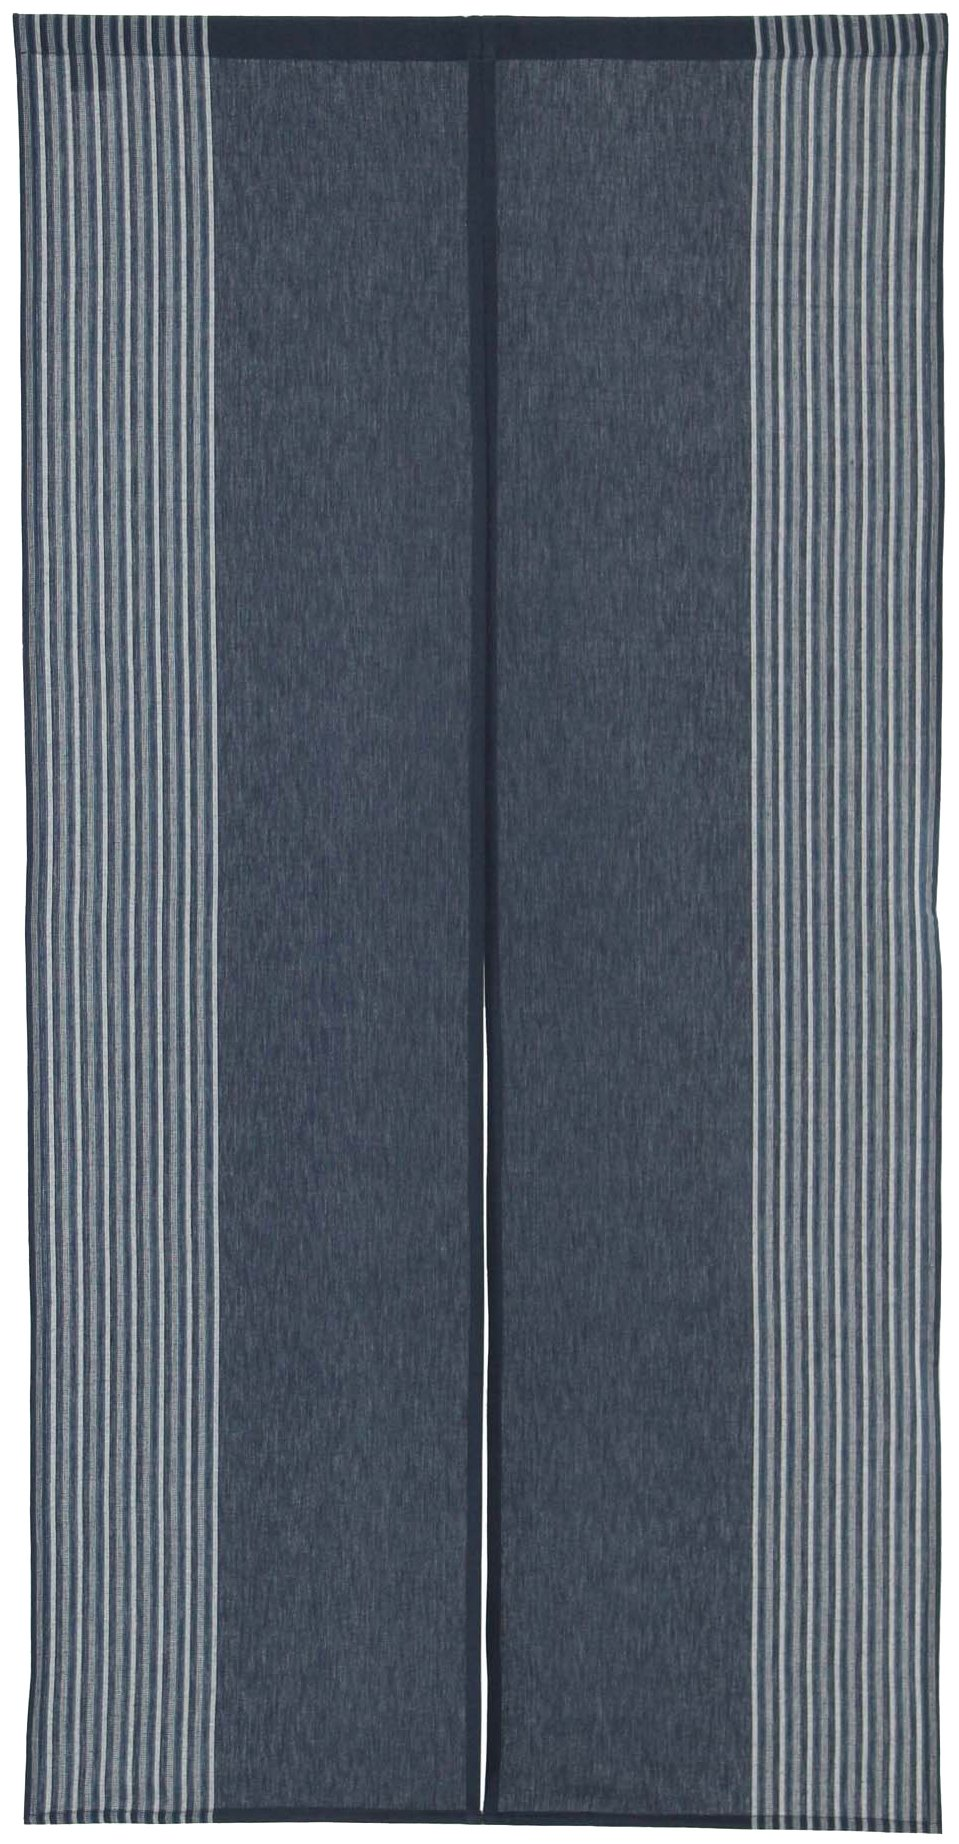 Vertical Stripe Navy Blue Cotton Cloth Japanese Noren Curtain Tapestry